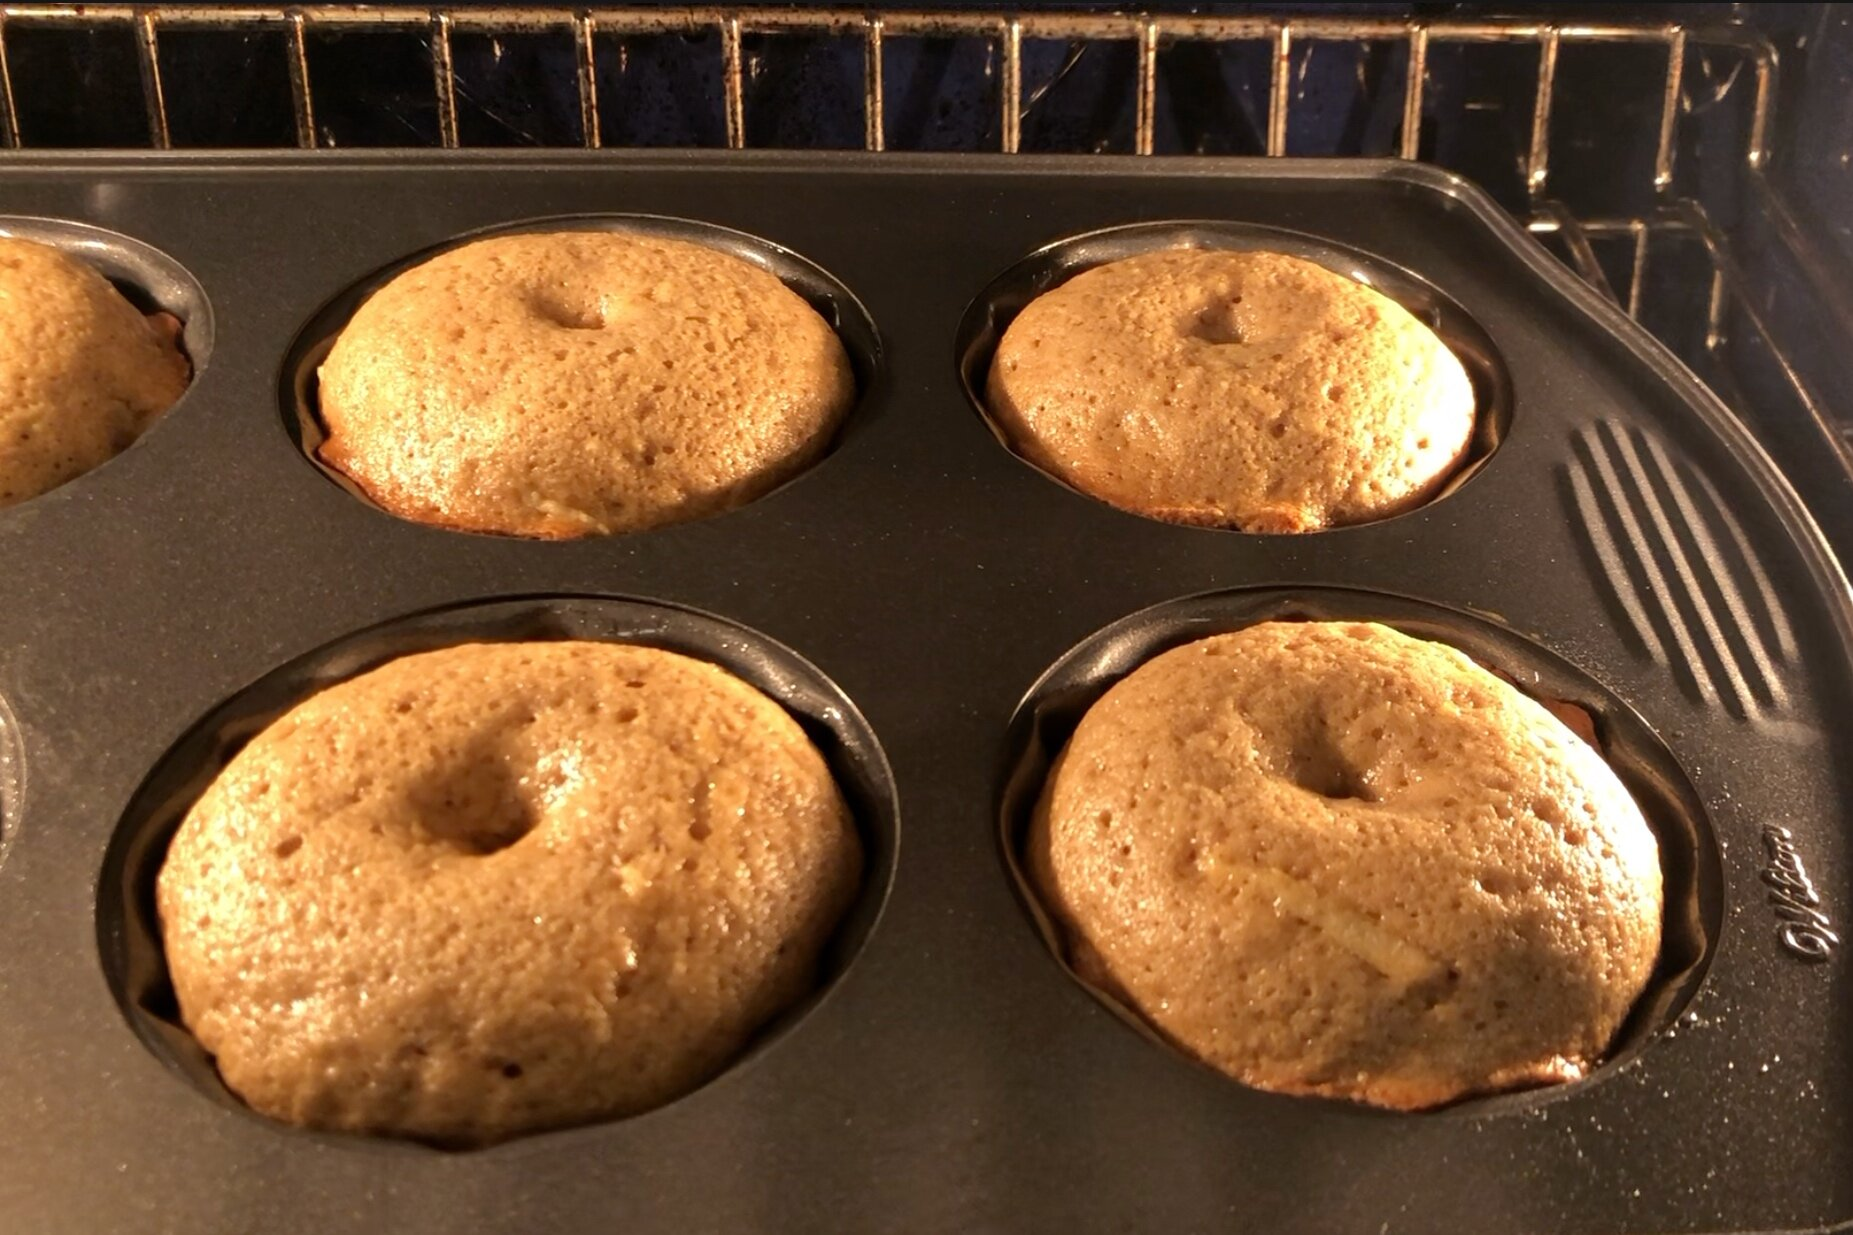 8. Bake for 20-22 minutes until a toothpick inserted in the middle comes out clean. -